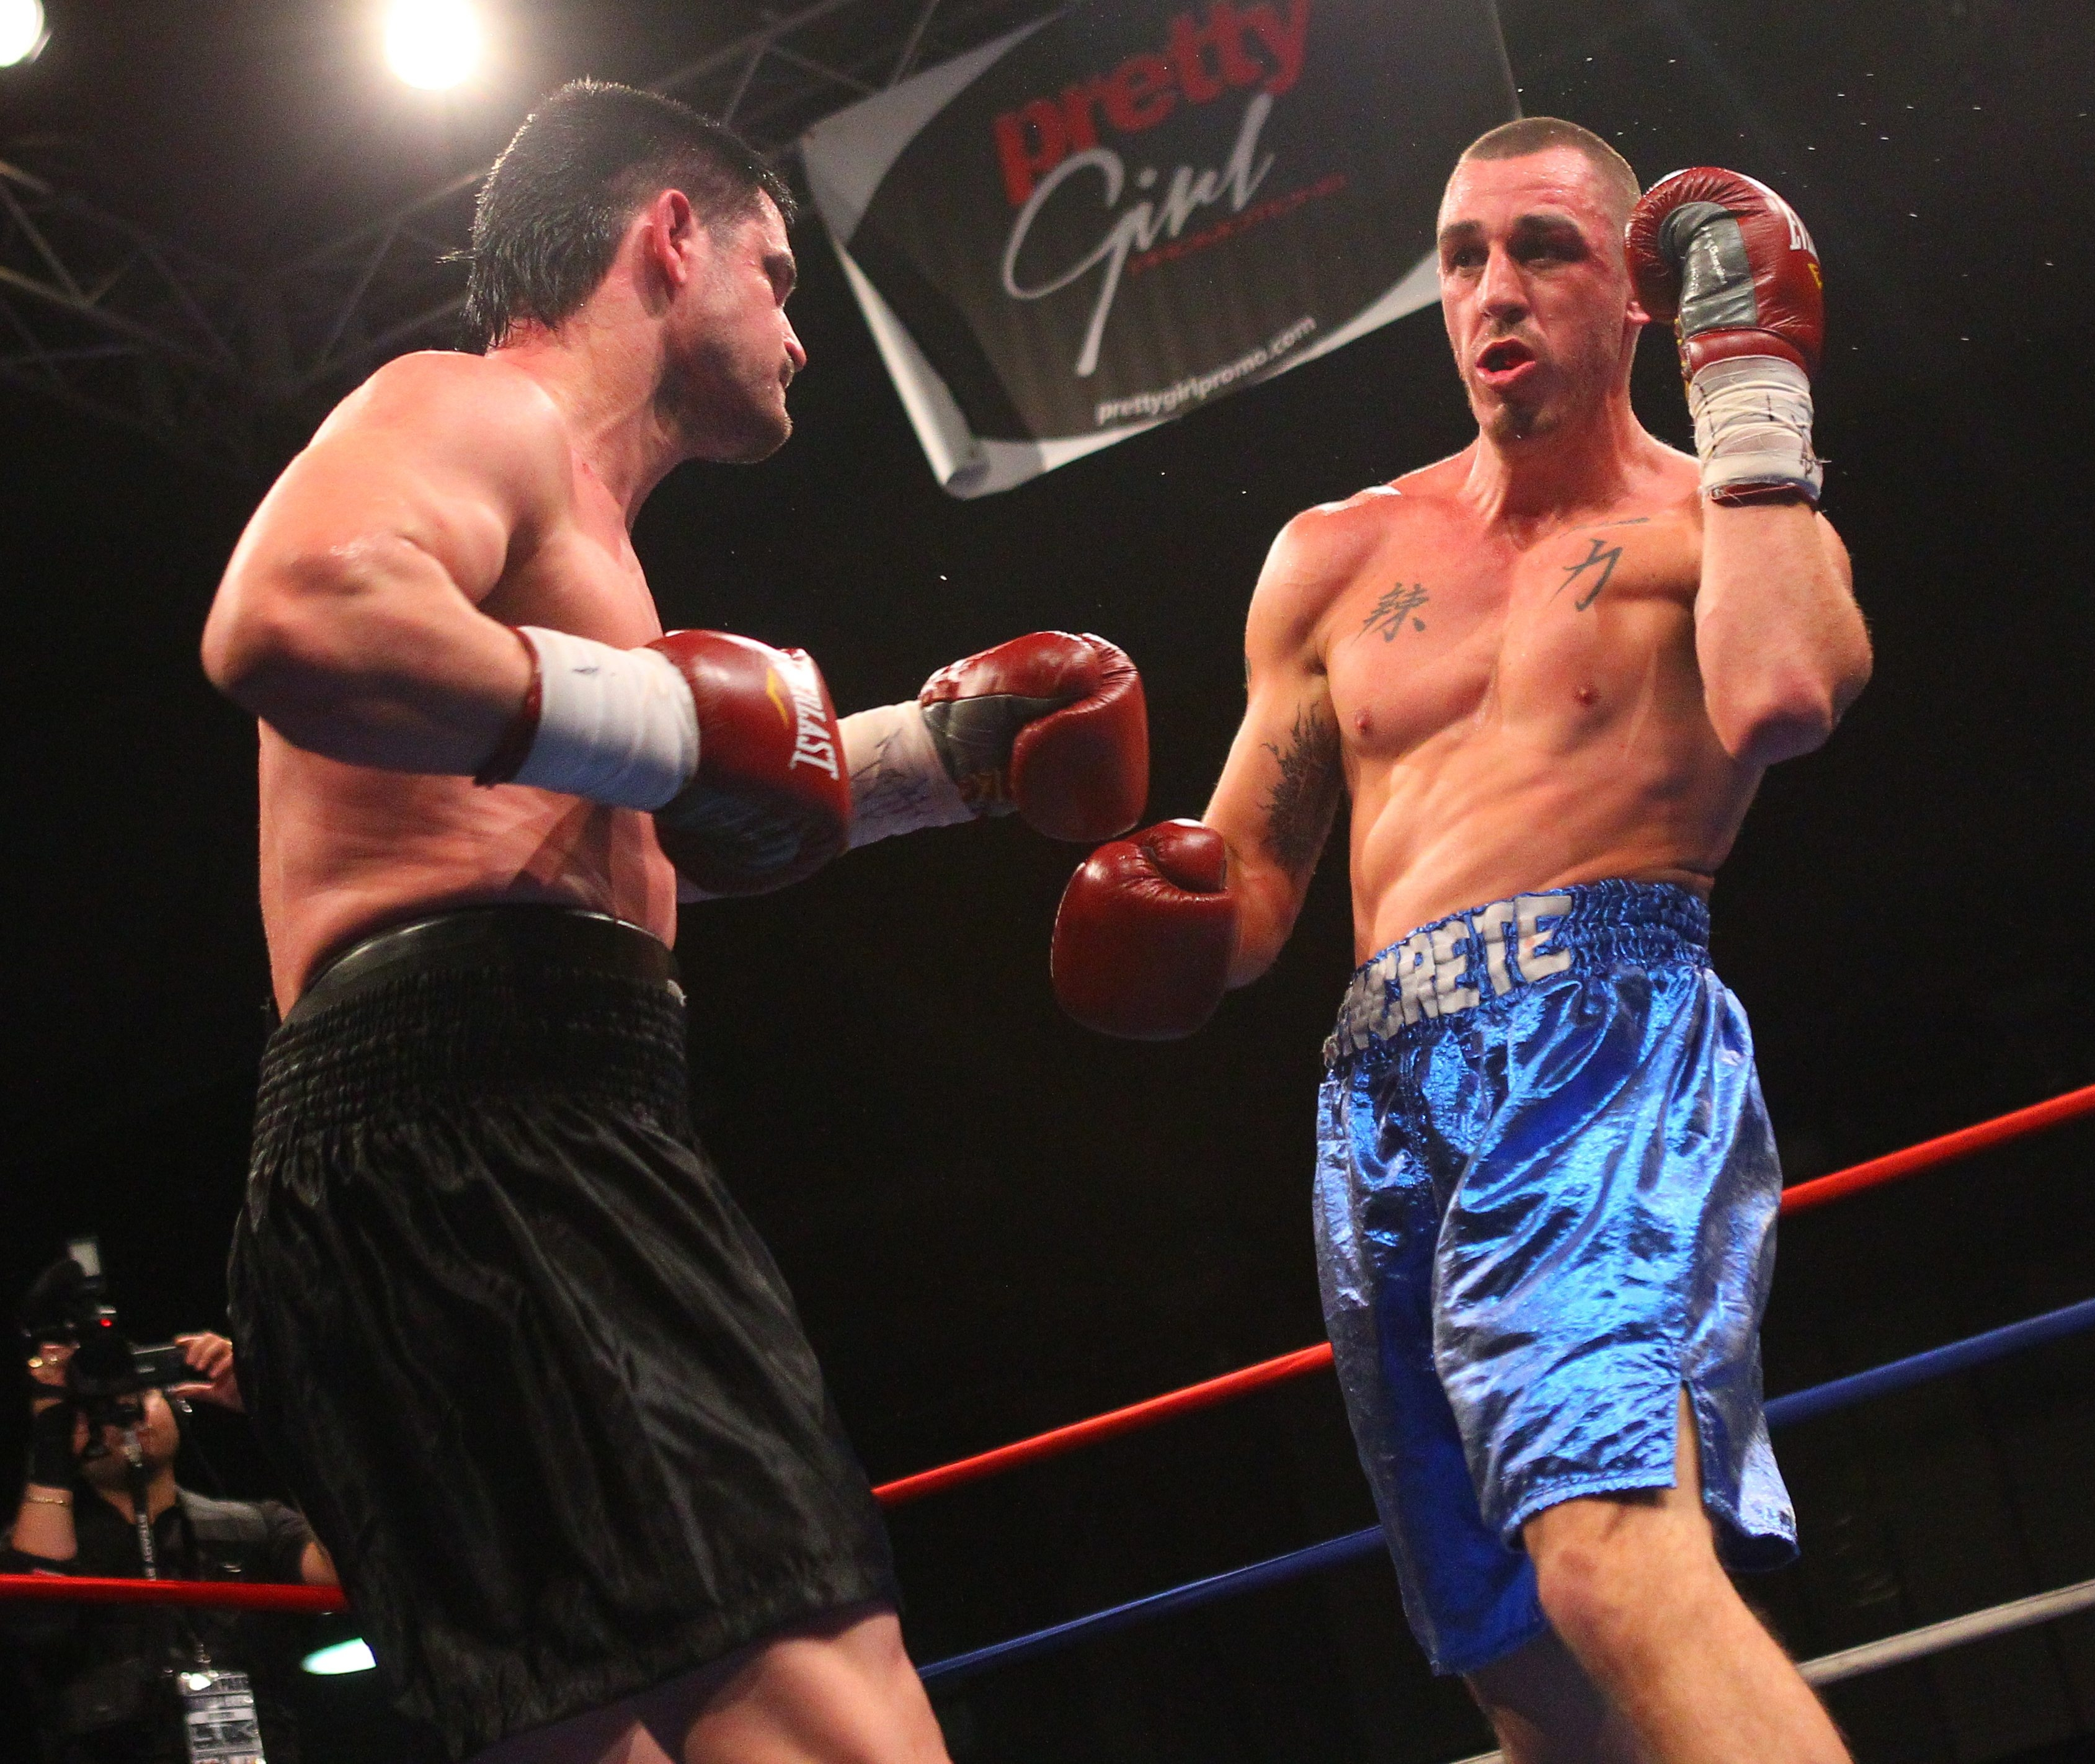 Milos Pantelic, left, a Buffalo cruiserweight, remained unbeaten by taking down Mike Bissett.